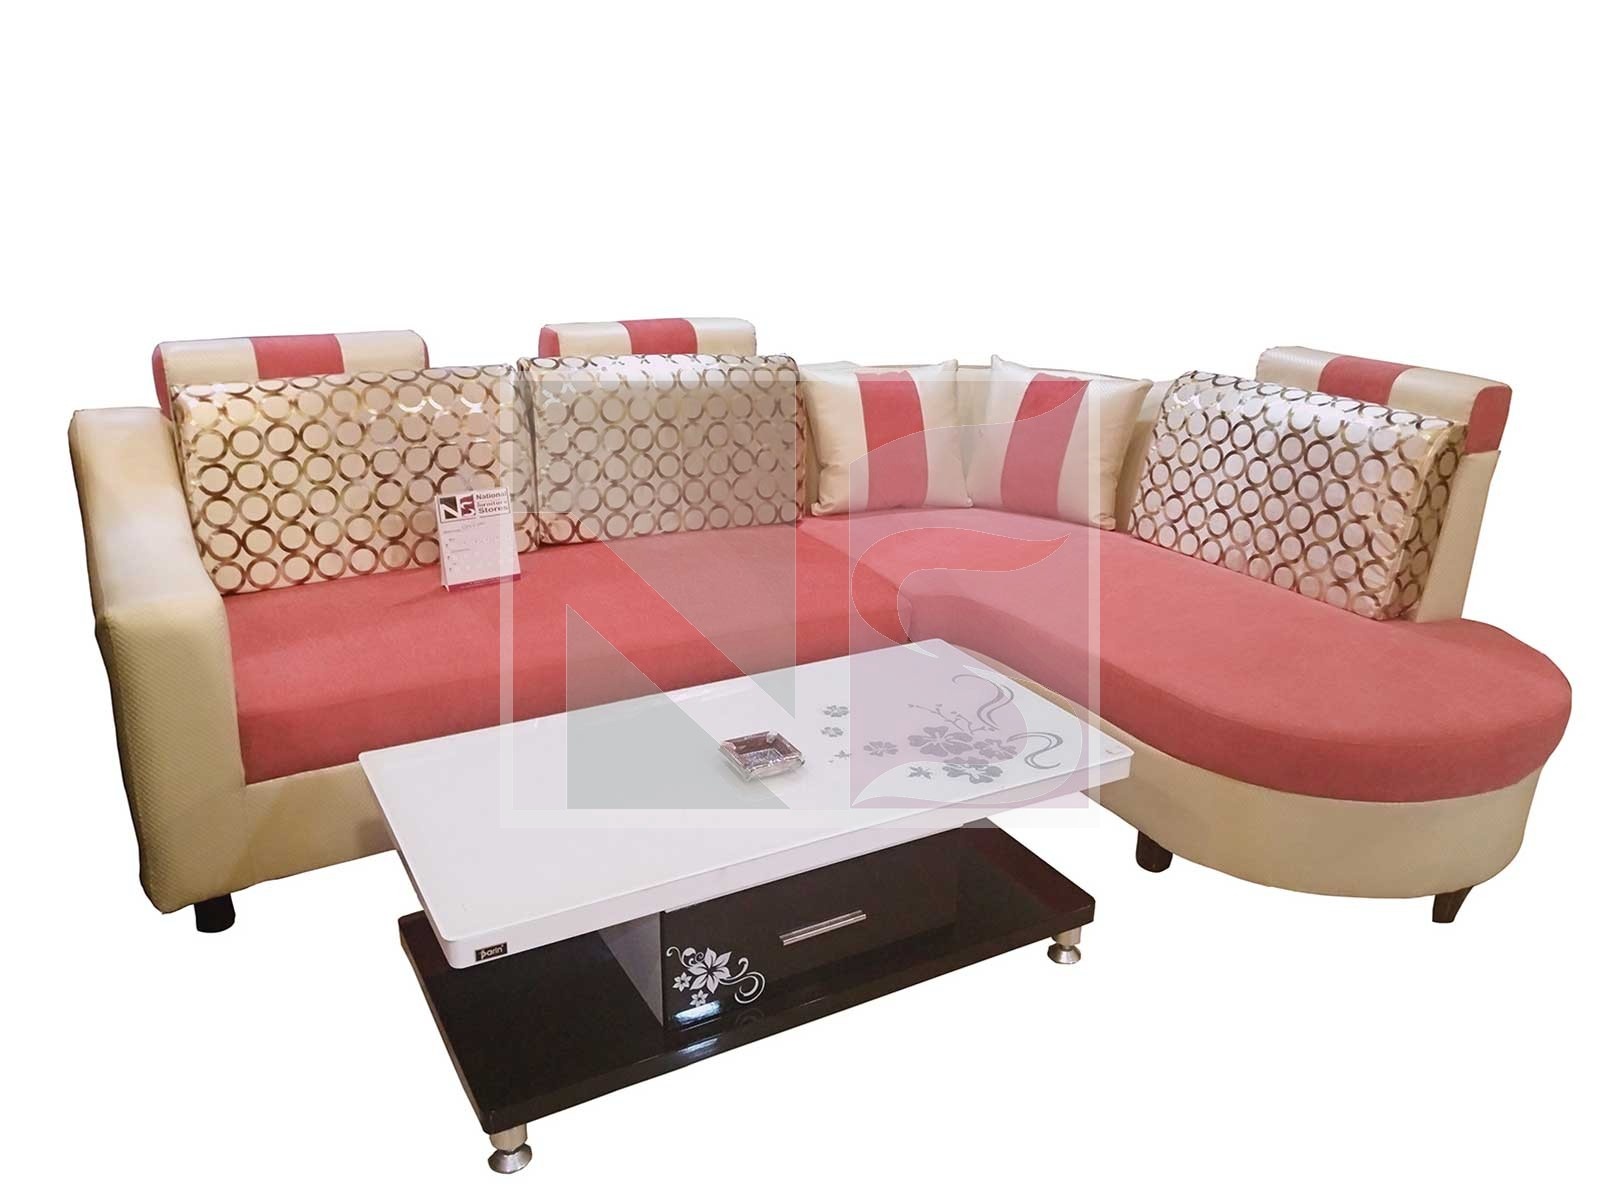 100 online home furnishing stores in india modern for Sofa bed india